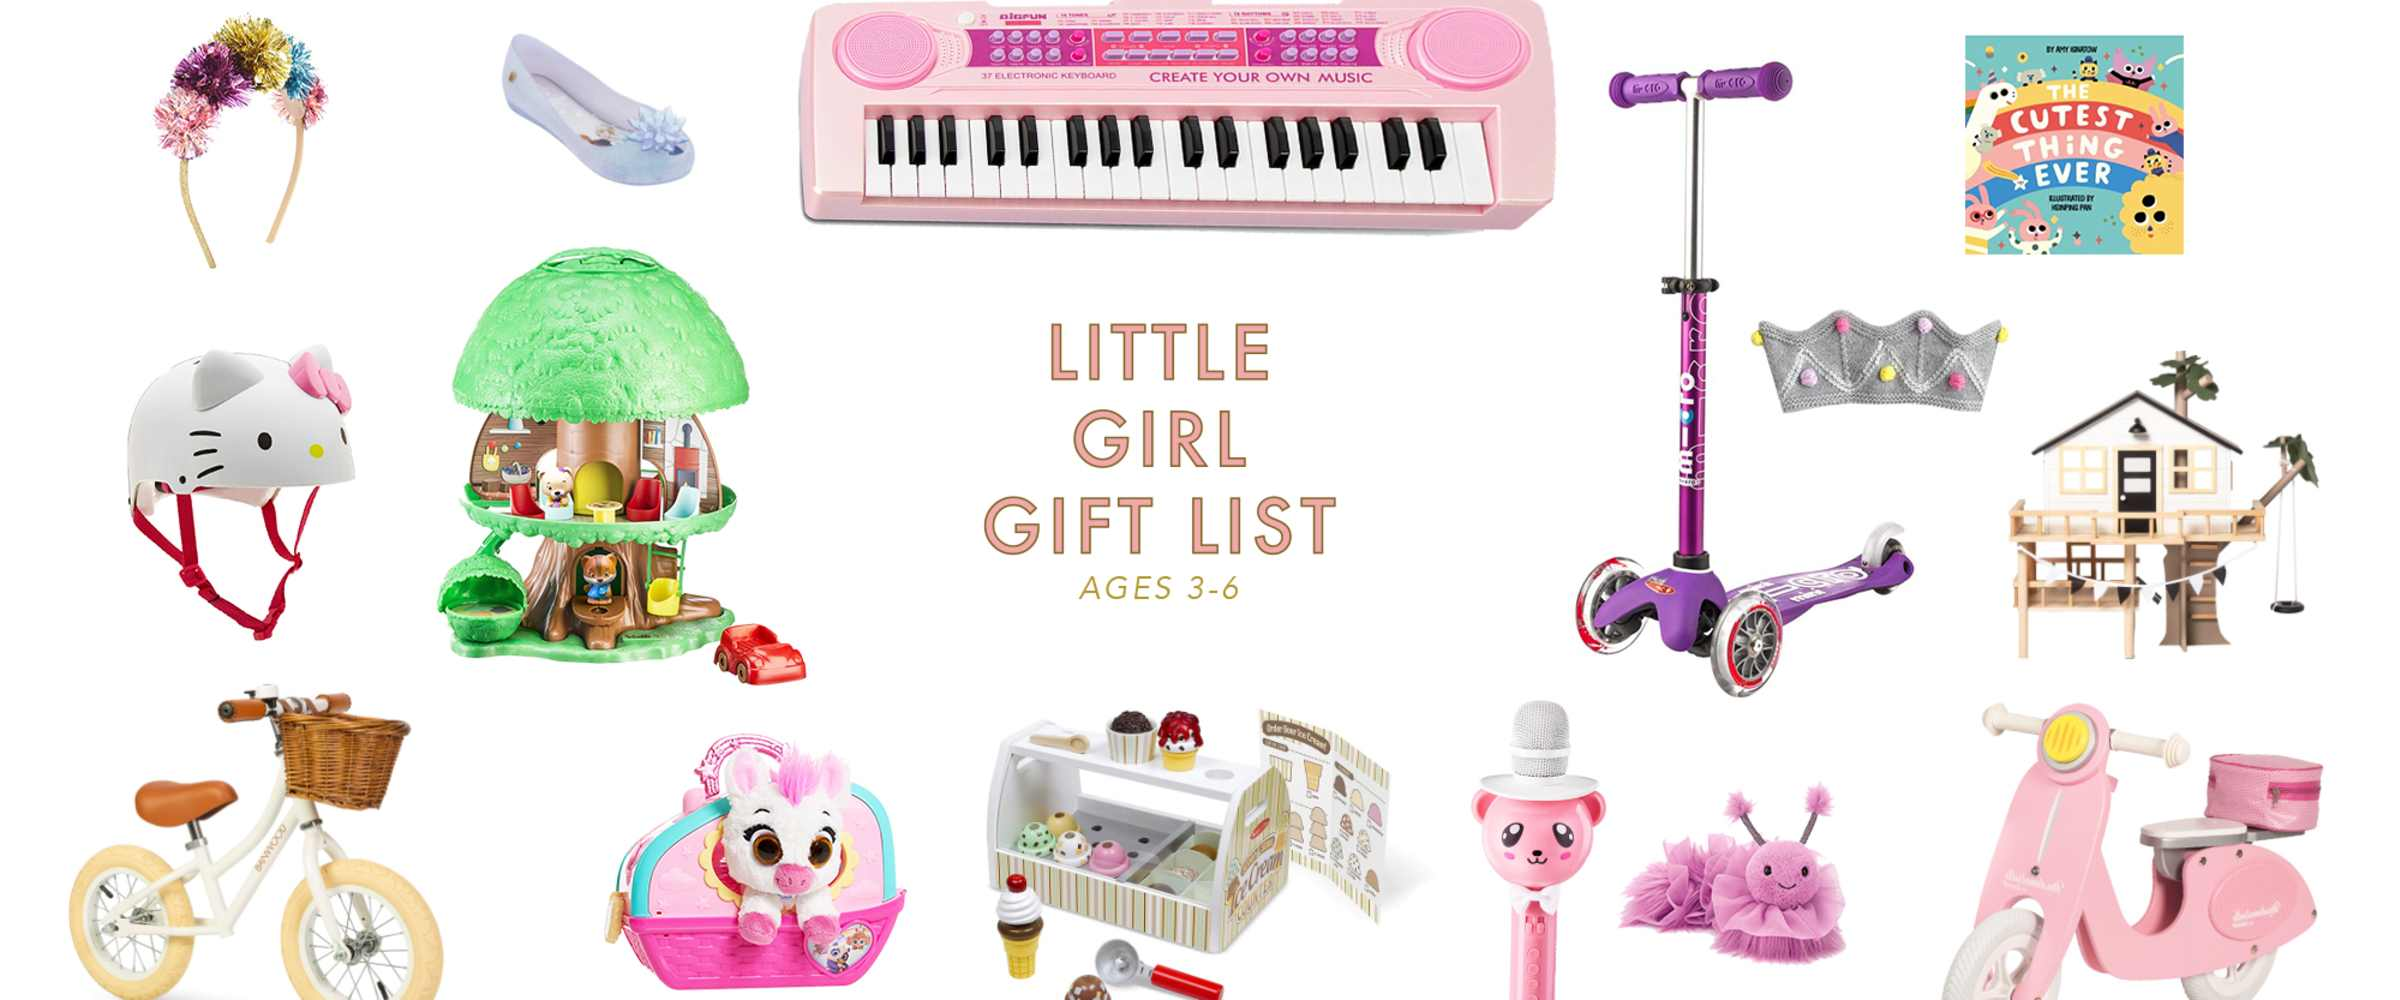 Gift Guide for Little Girls, ages 2-6